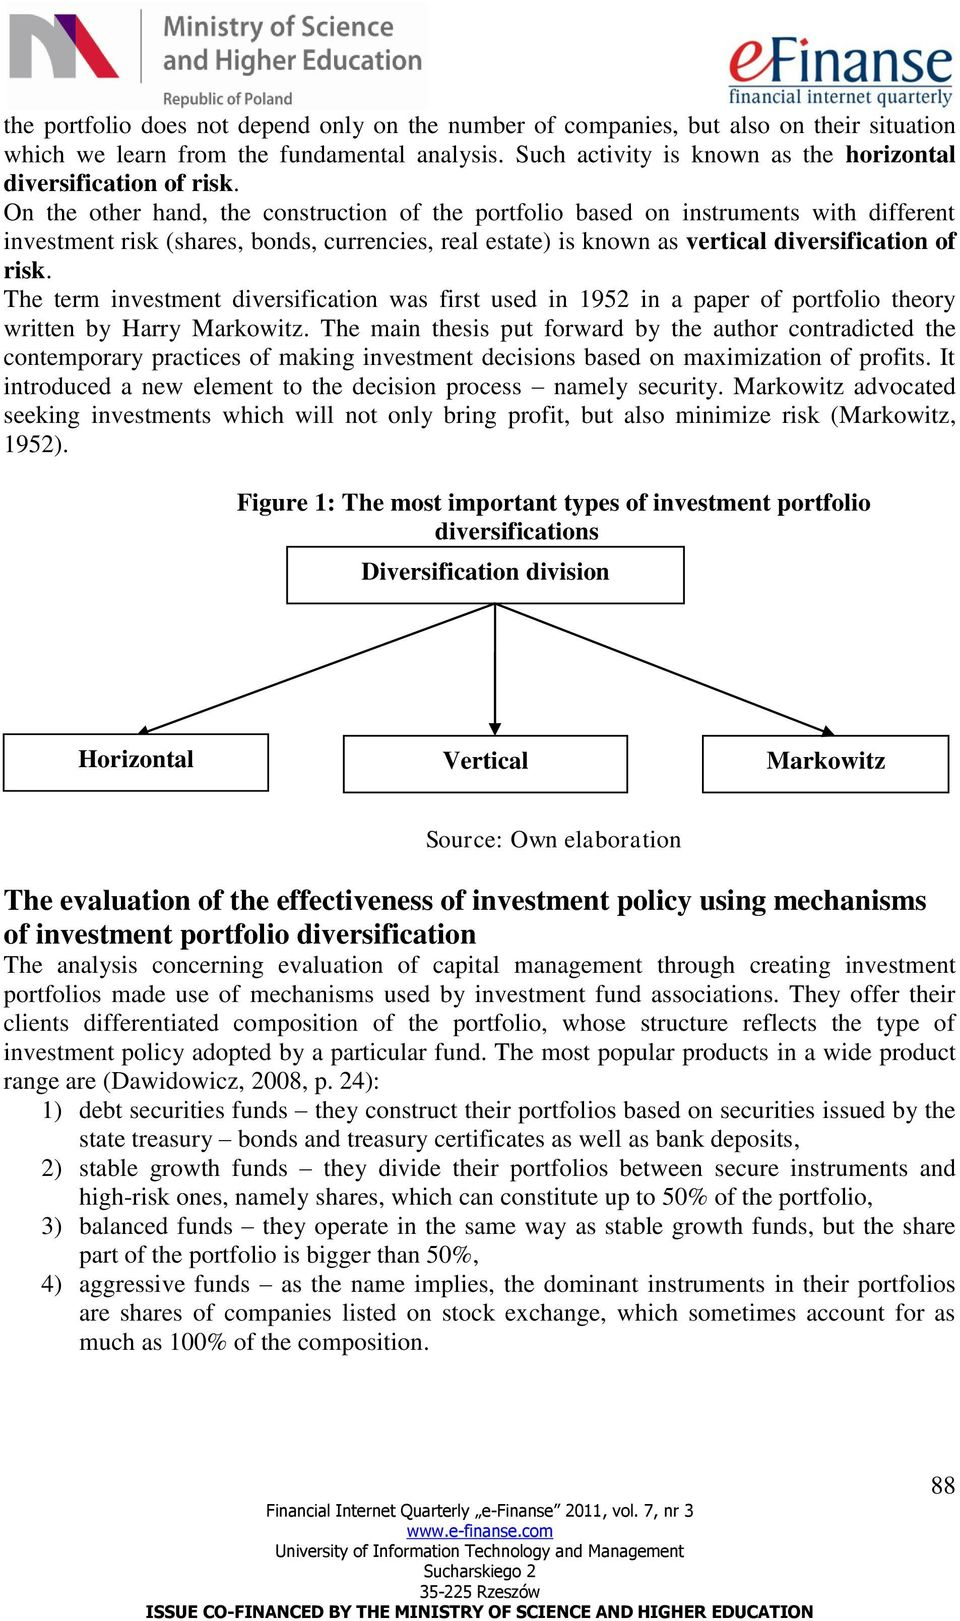 On the other hand, the construction of the portfolio based on instruments with different investment risk (shares, bonds, currencies, real estate) is known as vertical diversification of risk.